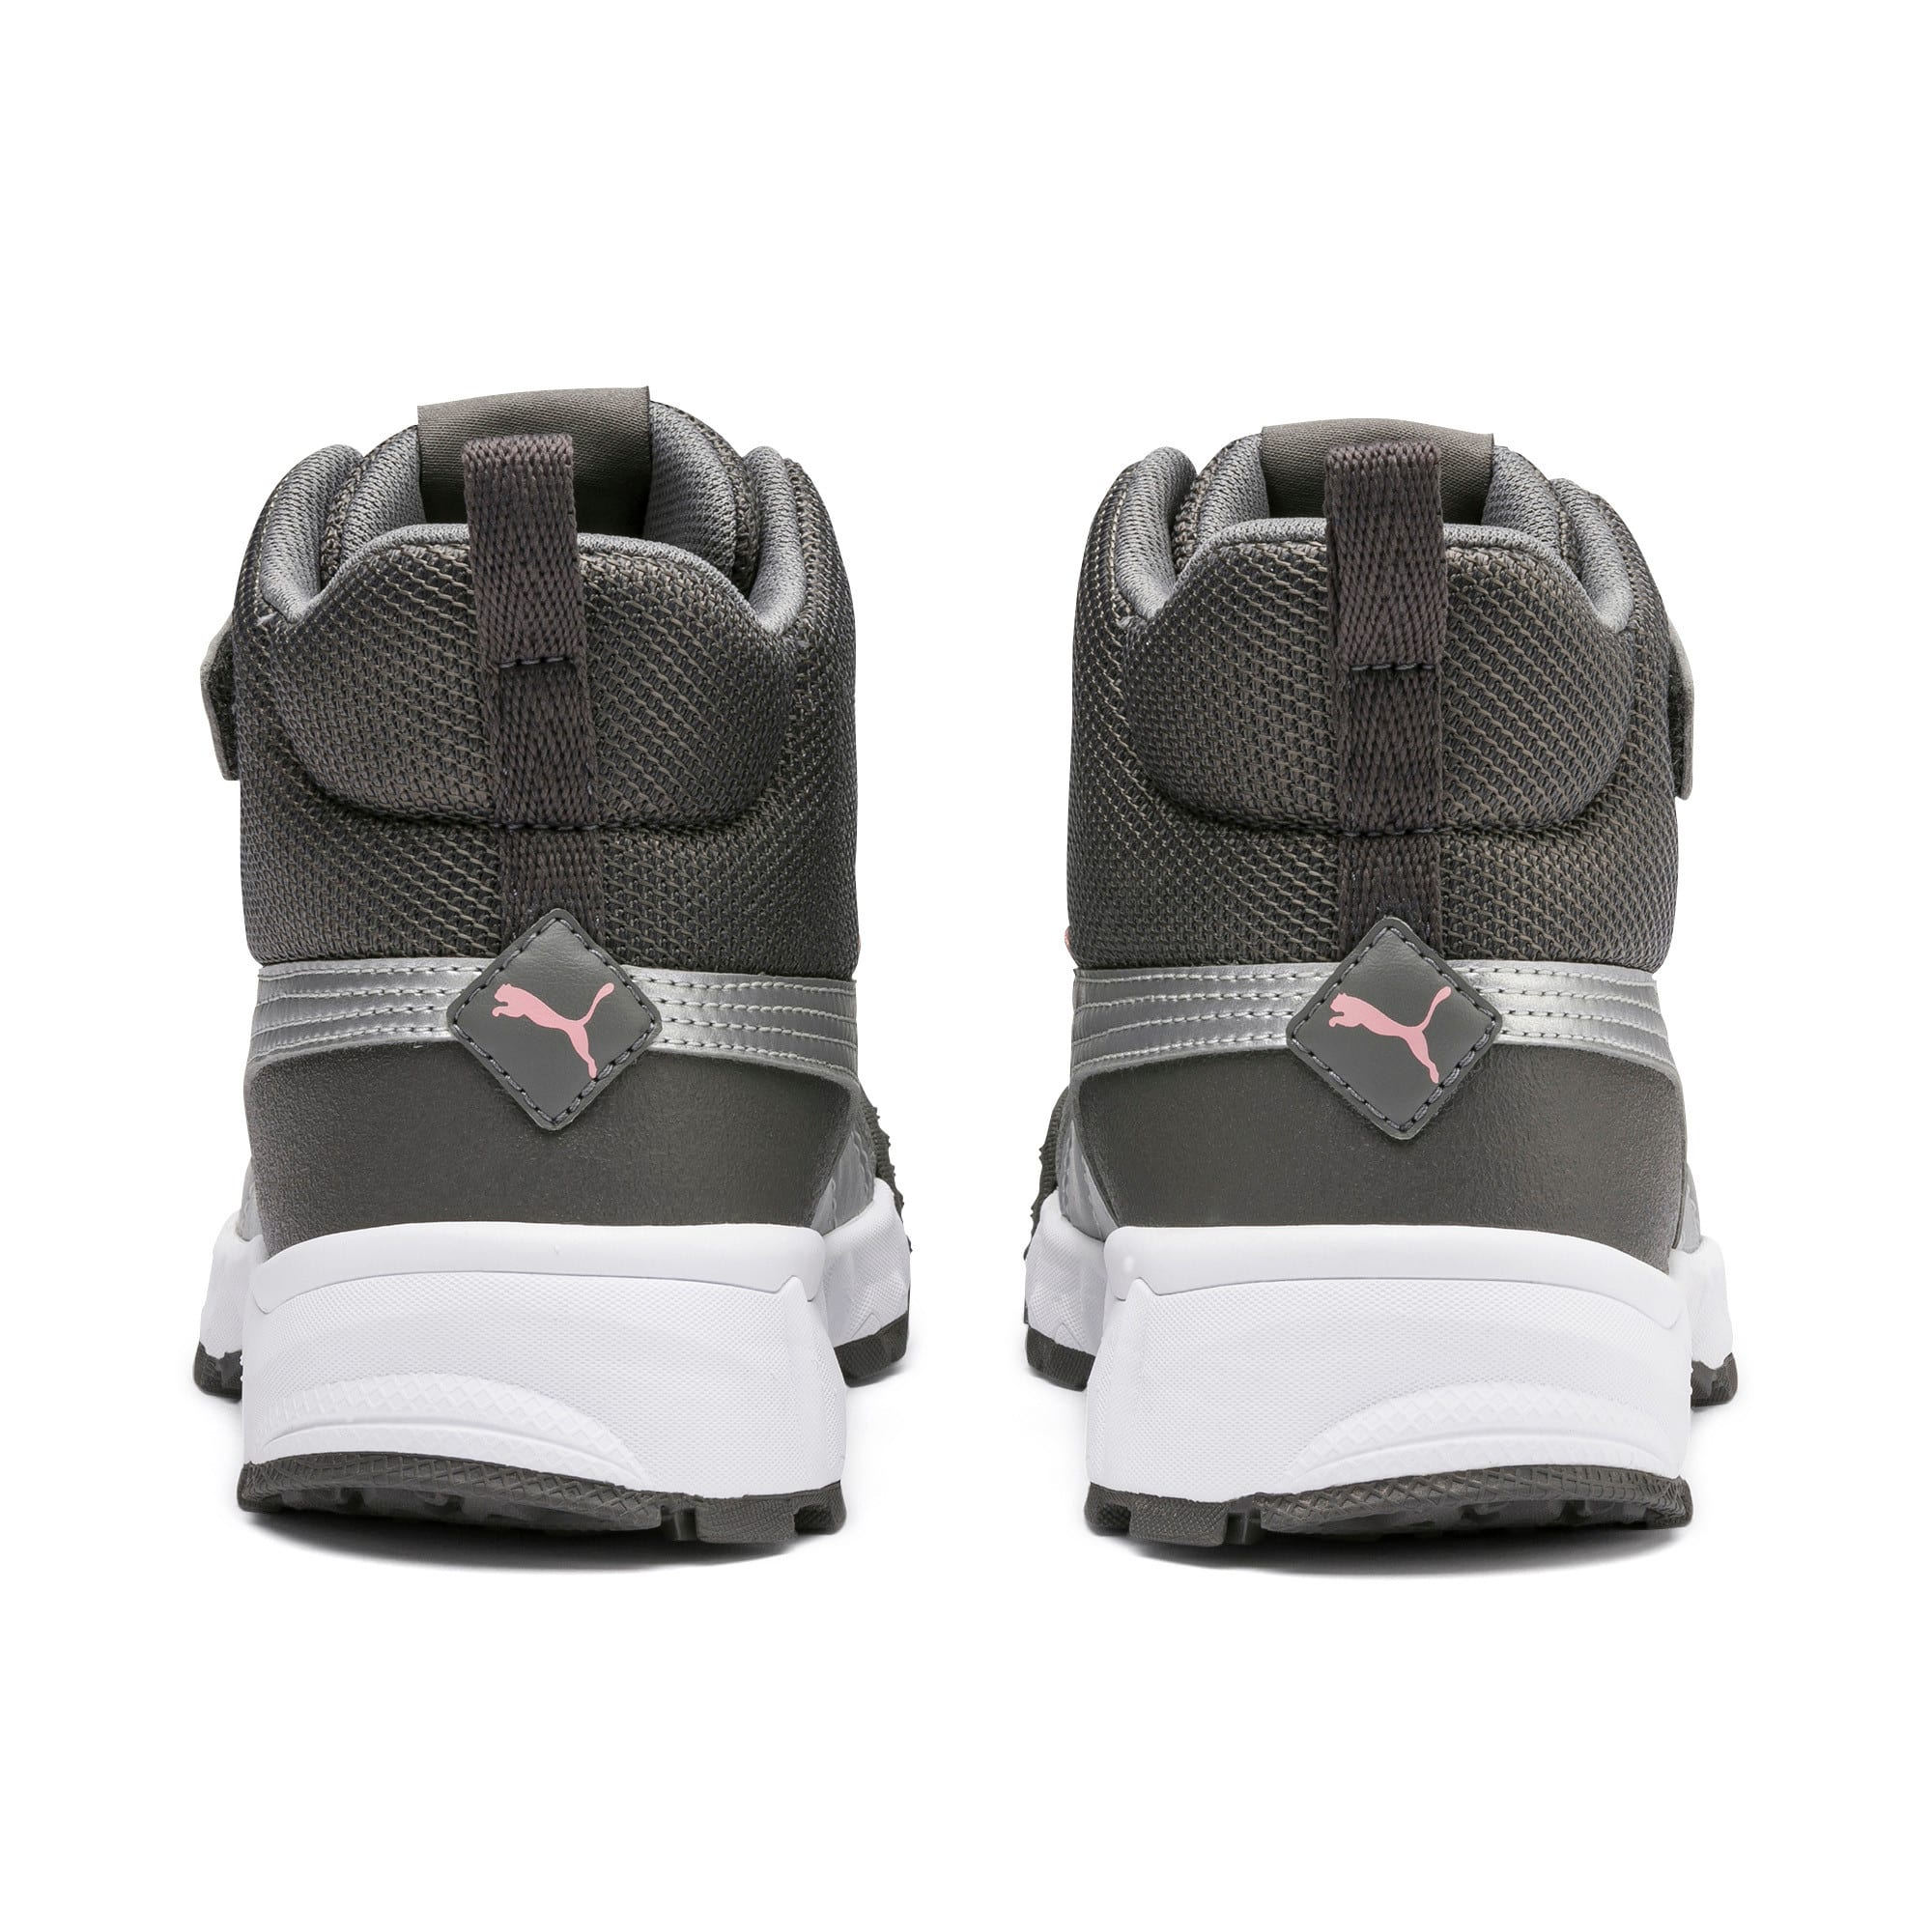 Thumbnail 3 of Maka V Kids' Trainers, Steel Gray-Bridal Rose, medium